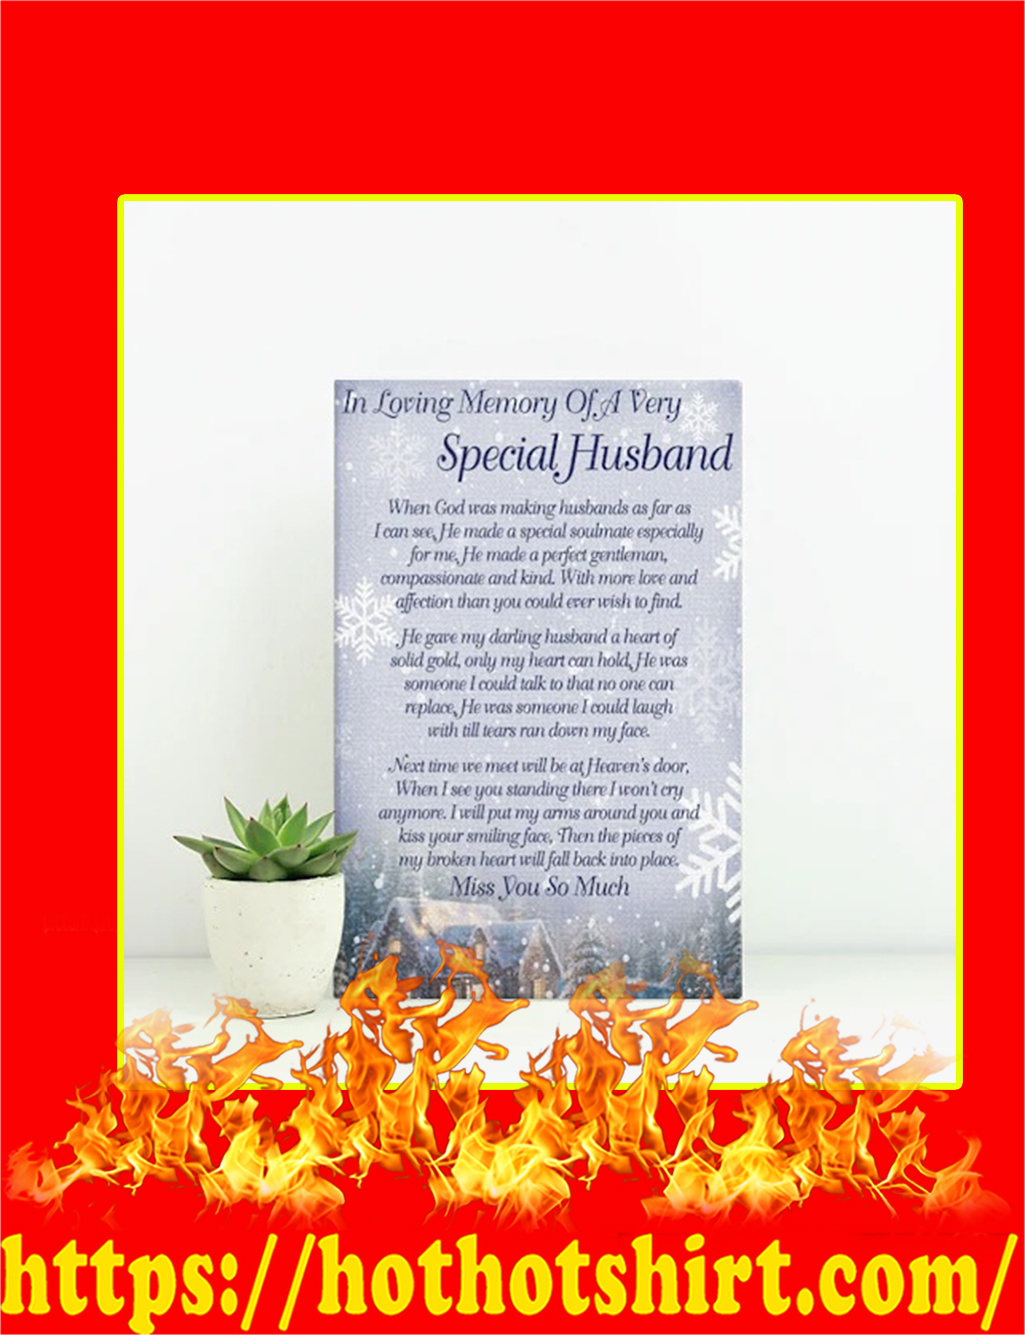 In Loving Memory Of A Very Special Husband Canvas - small